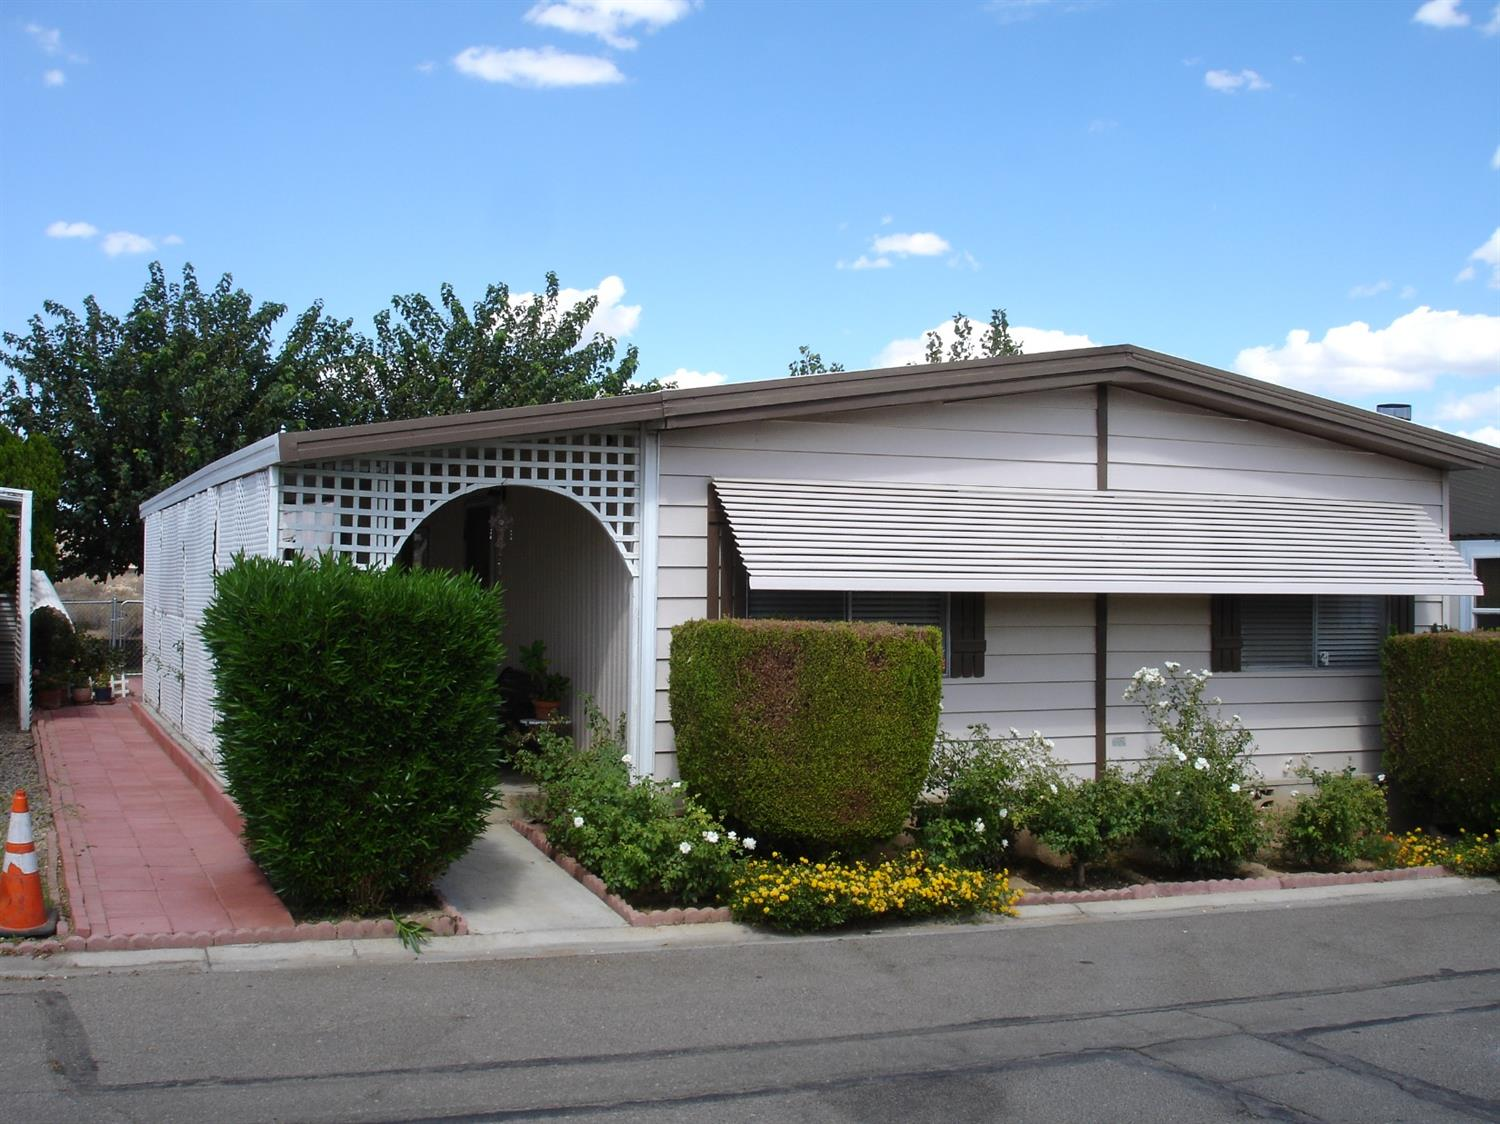 20683 Waalew Road #B189, Apple Valley, CA 92307